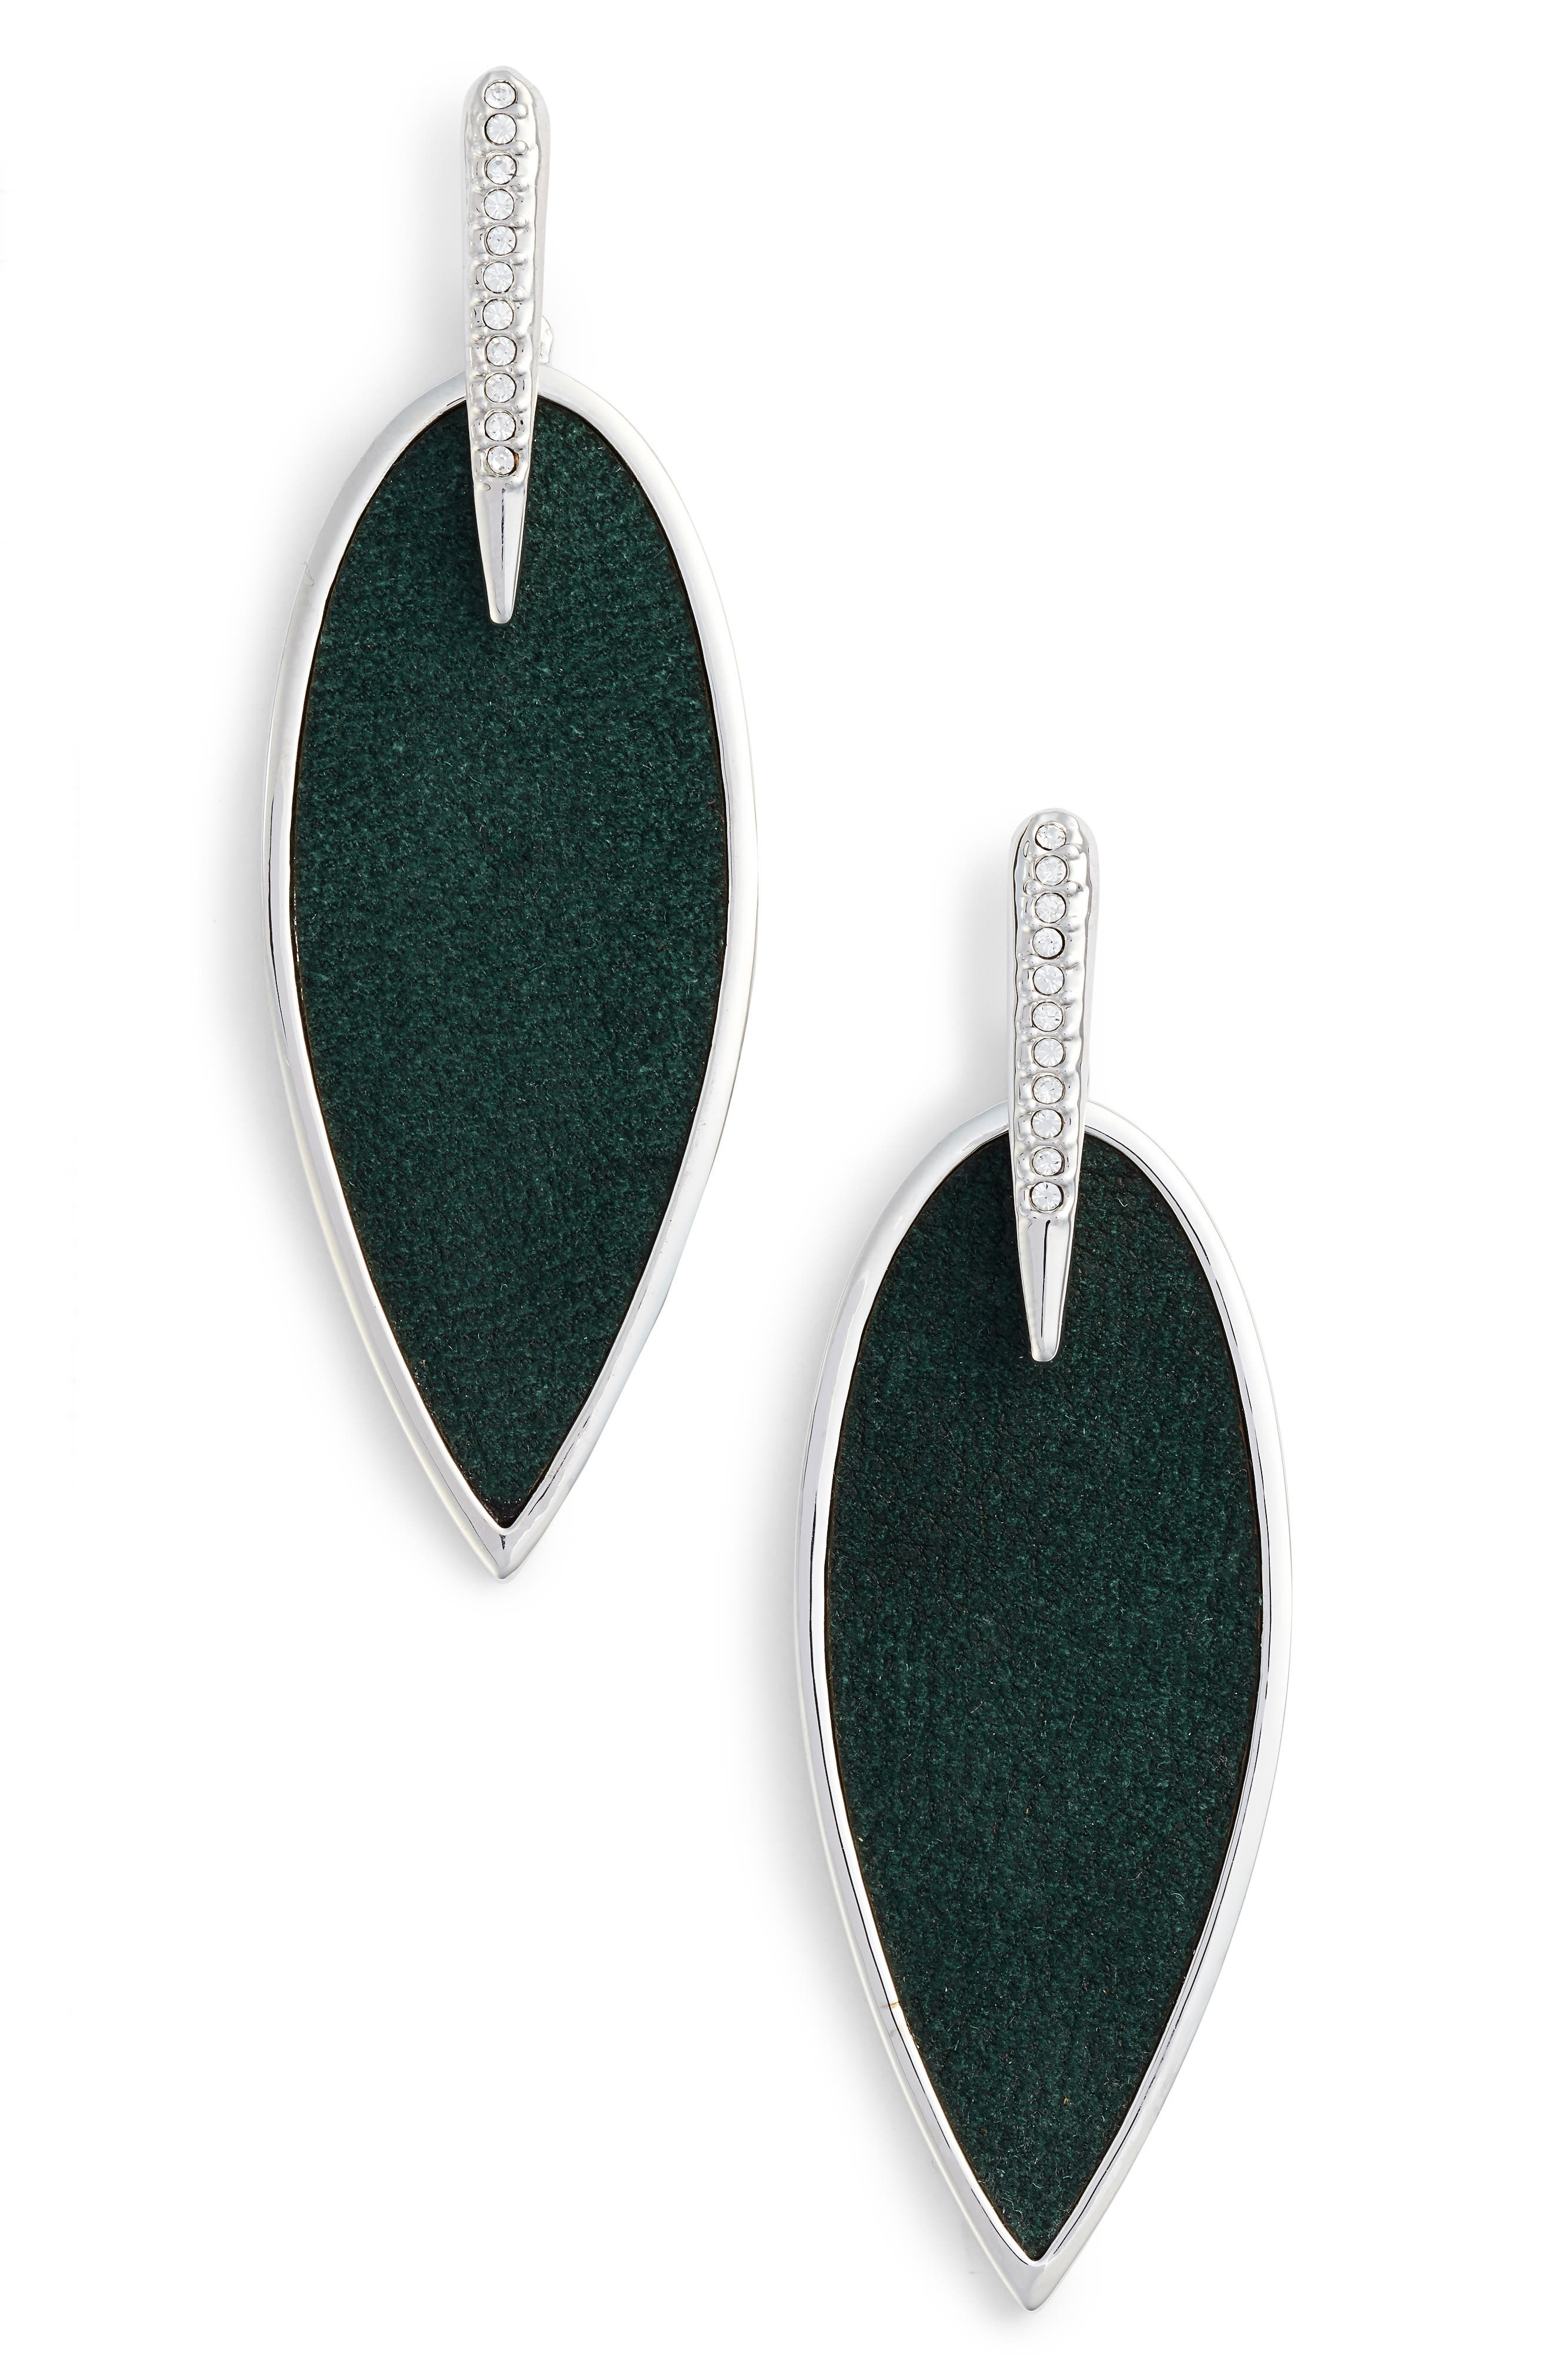 Inlaid Leather Statement Earrings,                         Main,                         color, 040